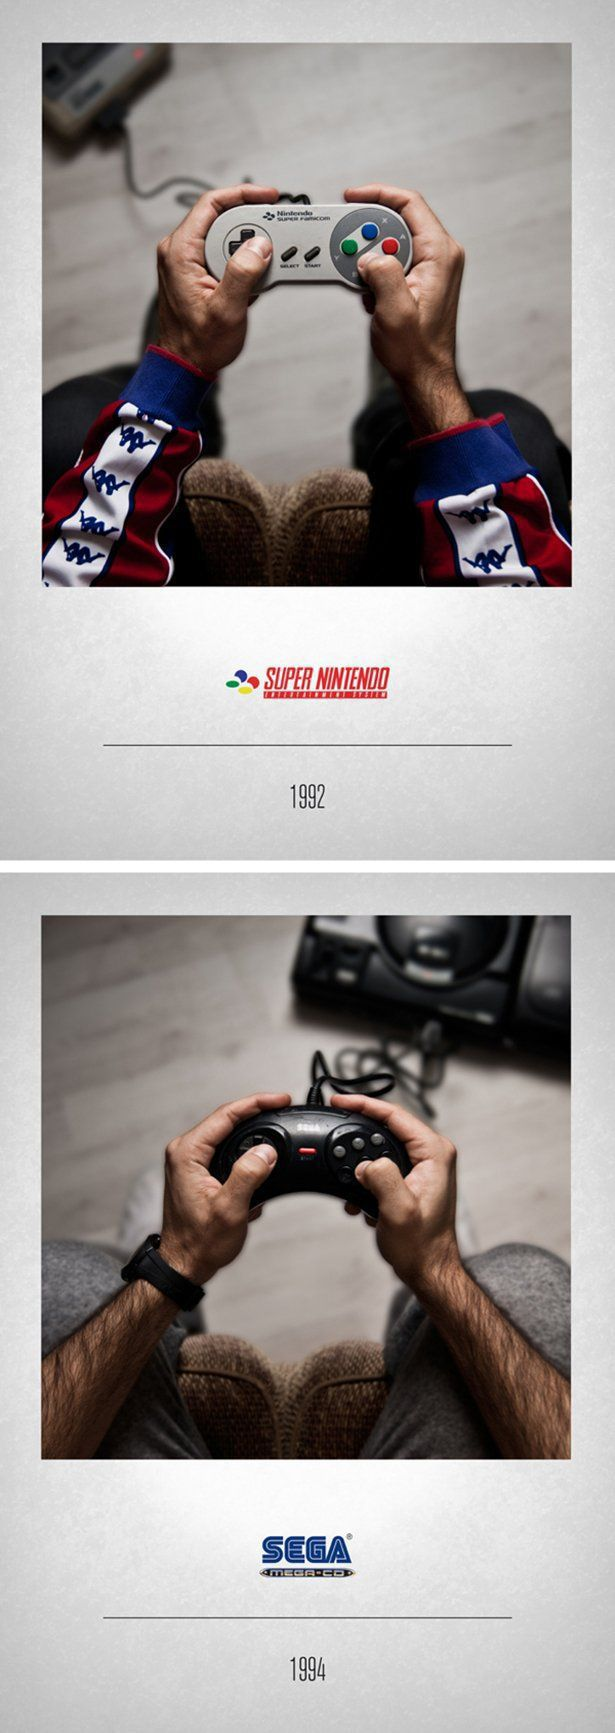 how_video_game_controllers_have_changed_over_the_years_640_high_09